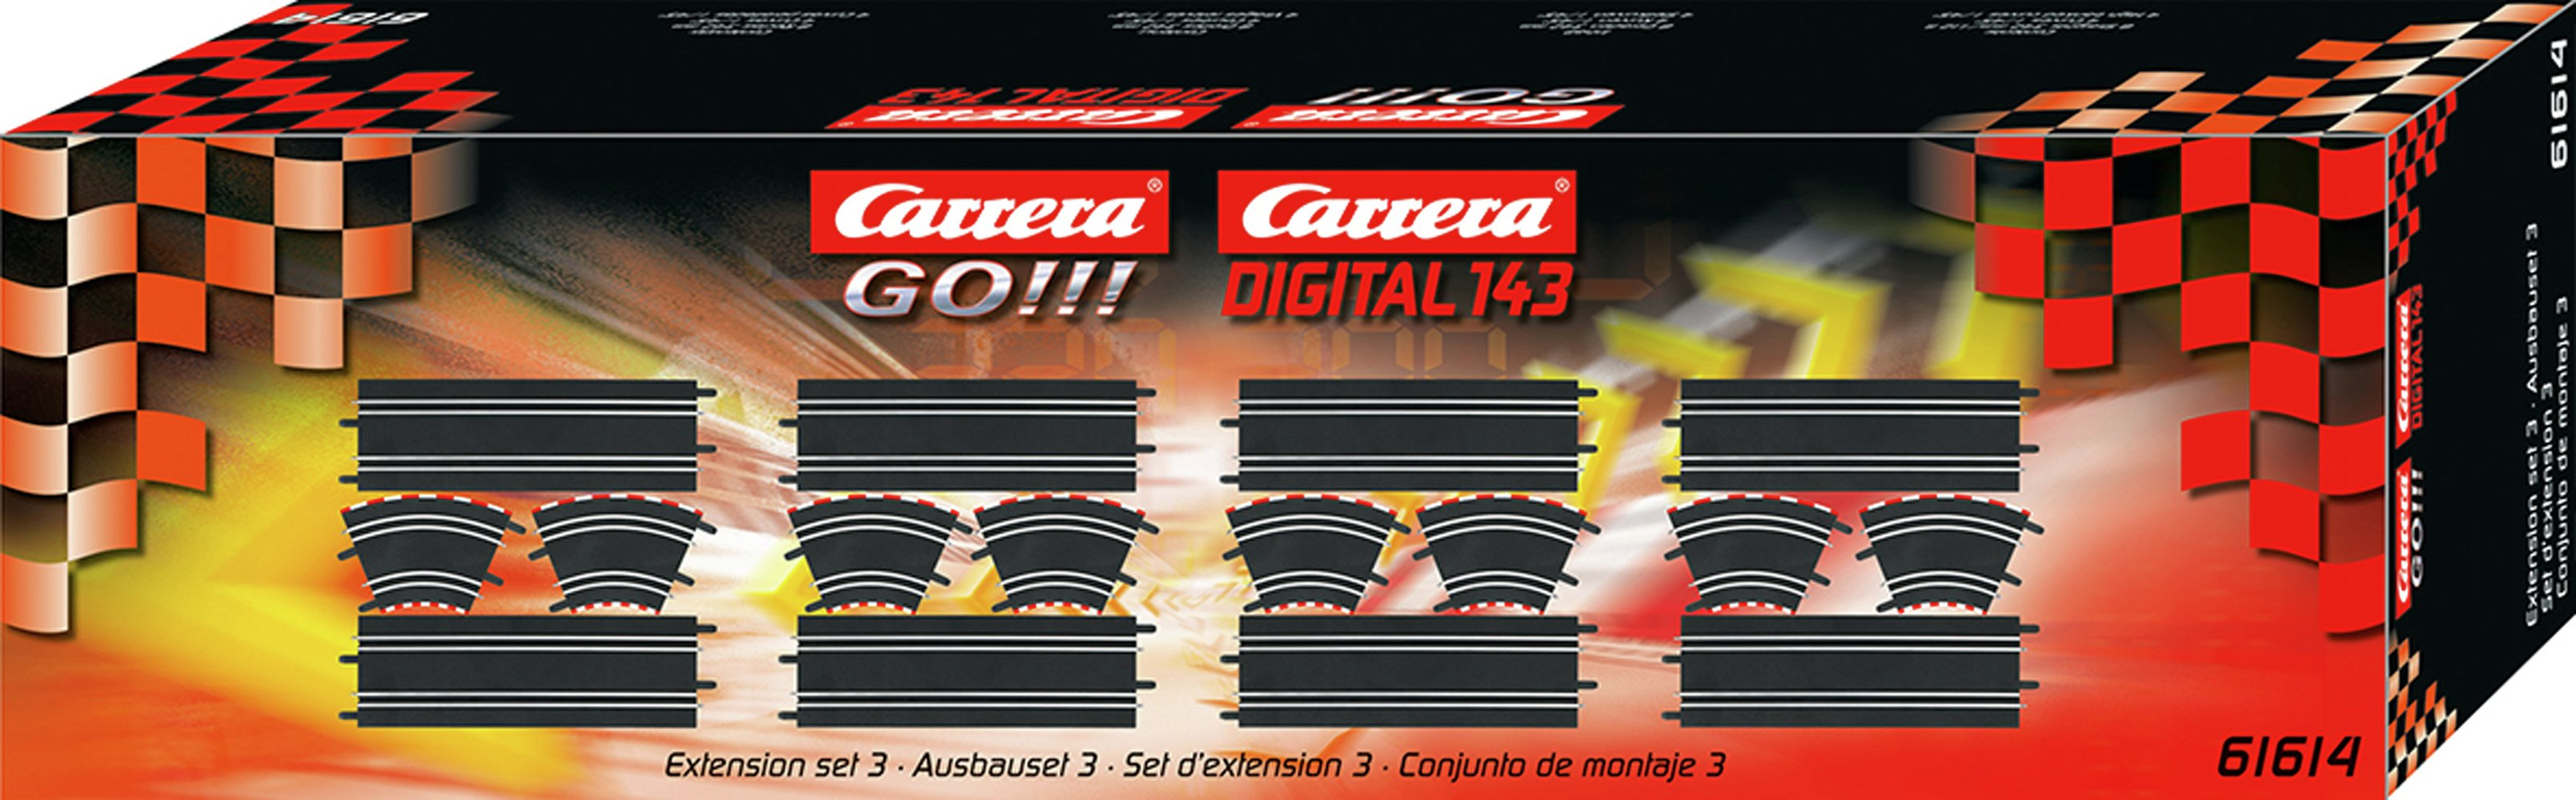 Image of Carrera - Go Extension Set 3.